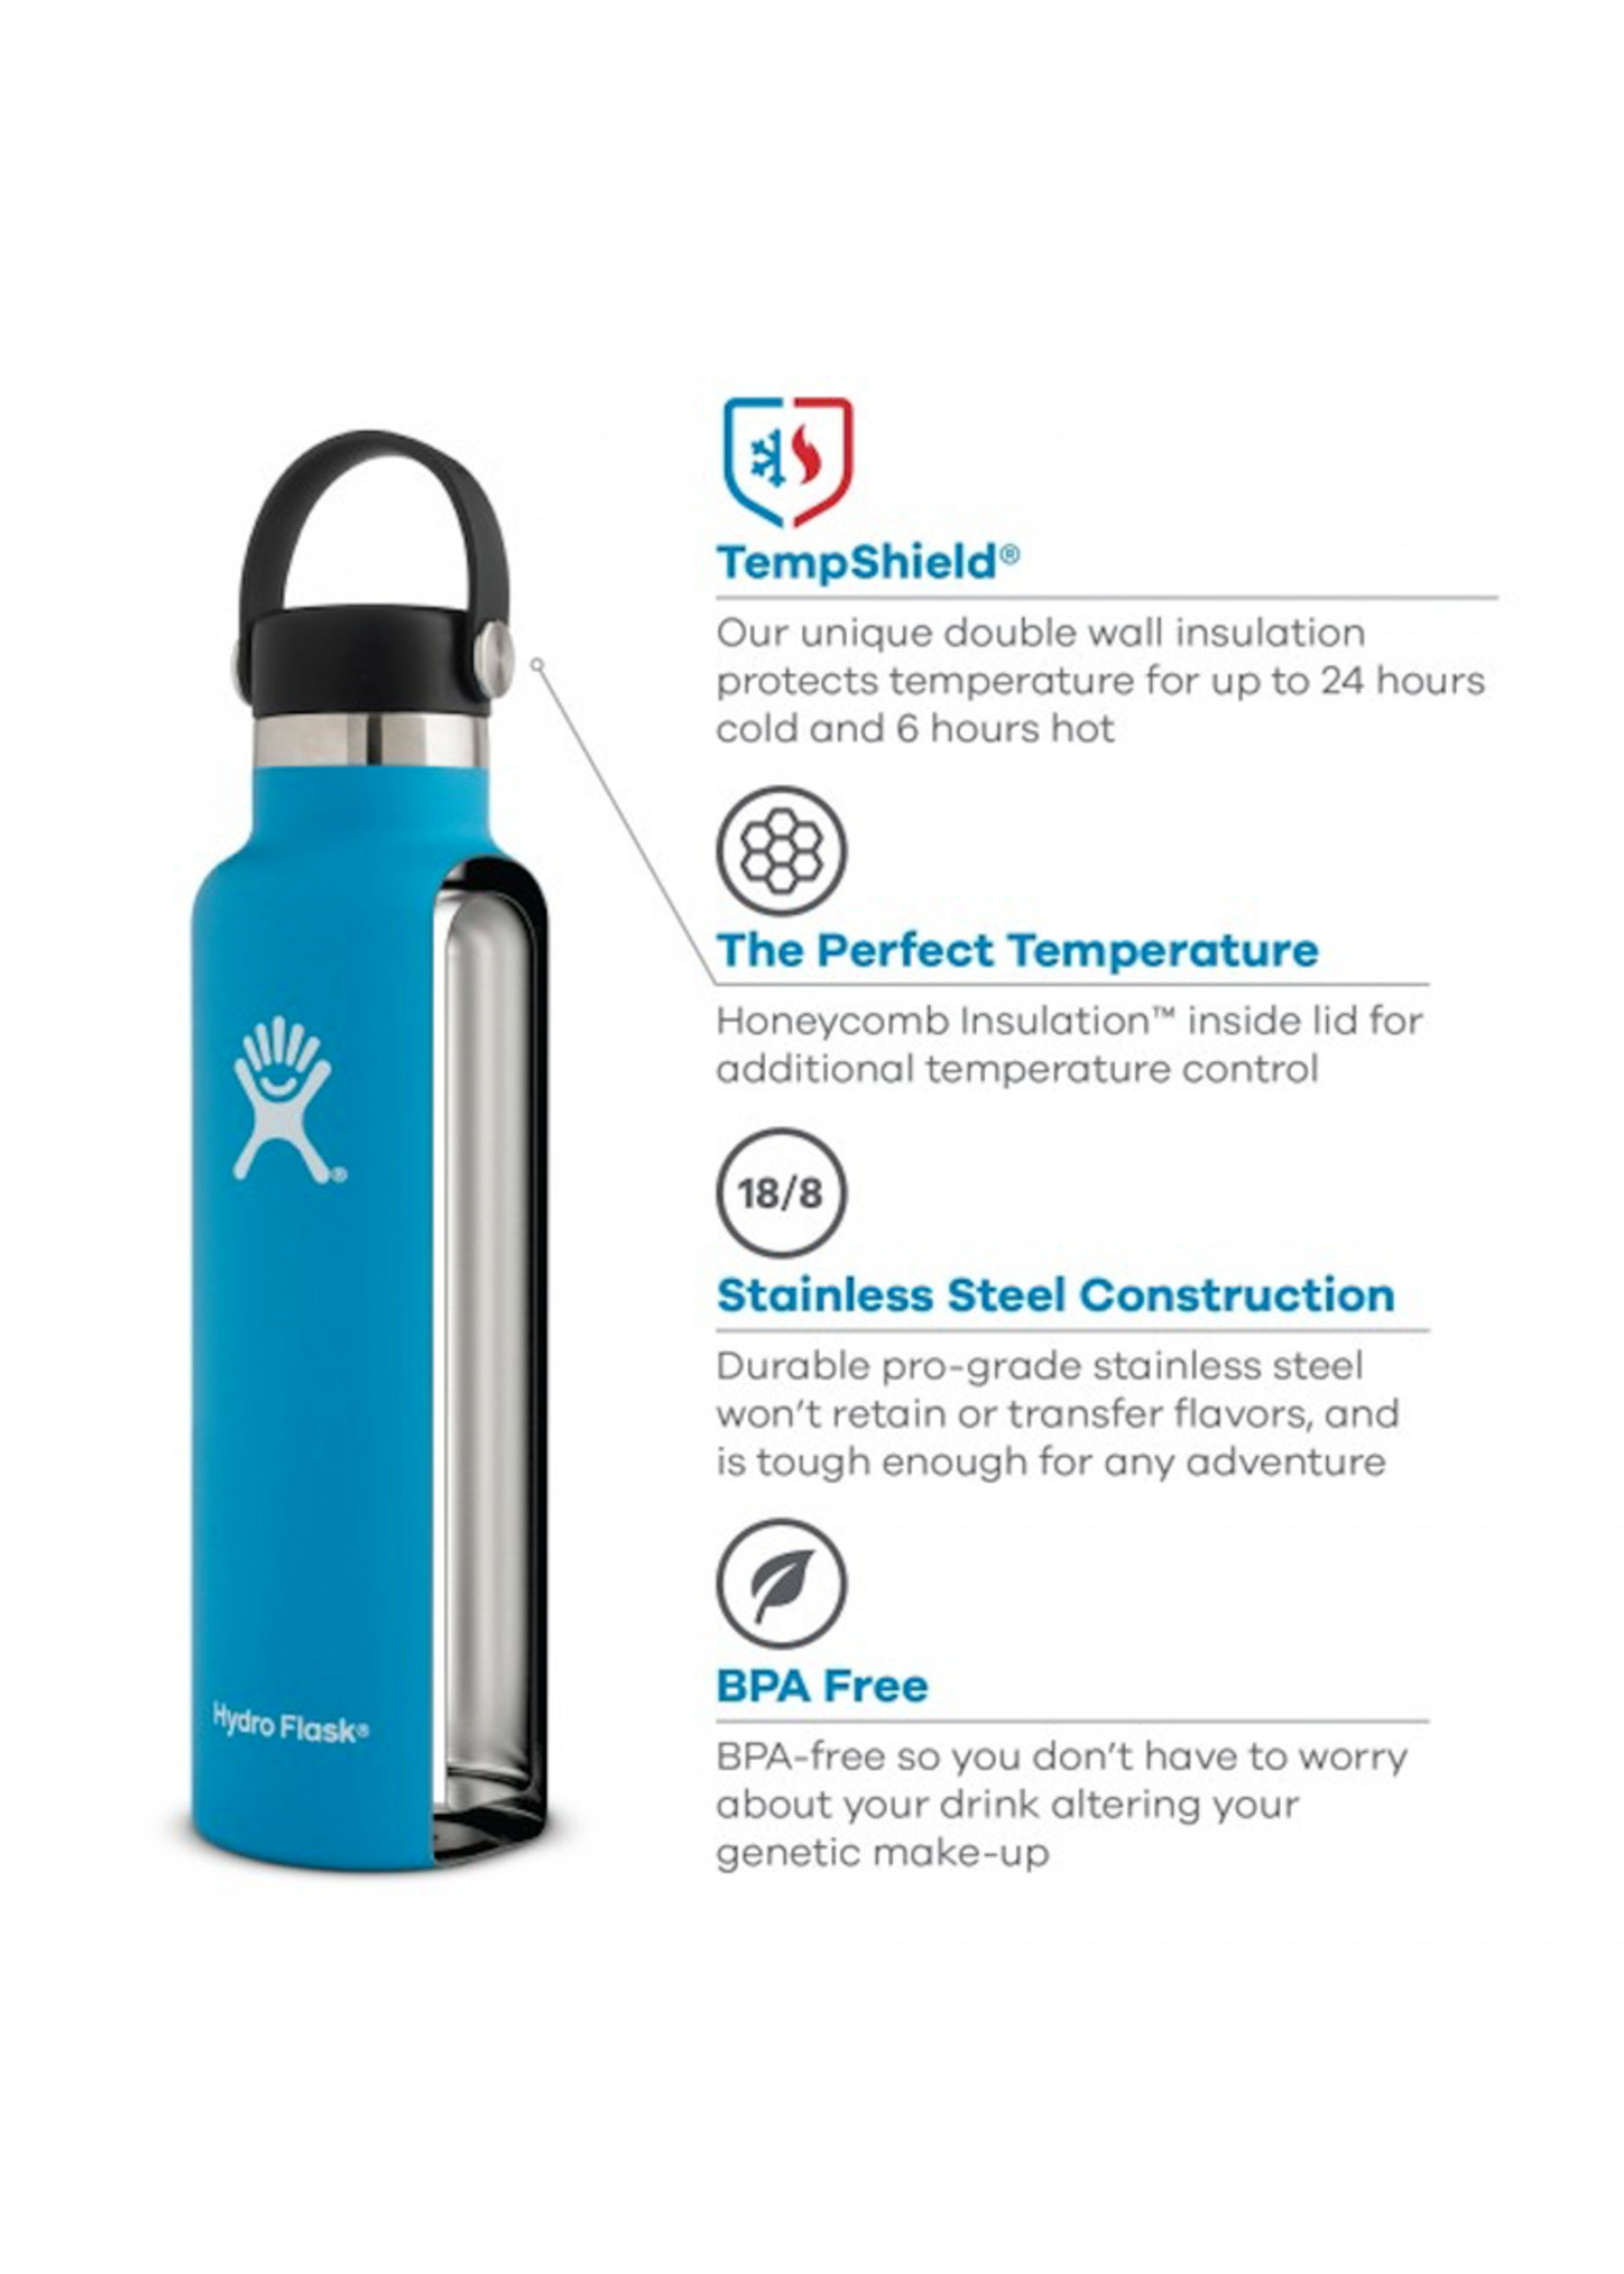 Hydro Flask Hydro Flask, 21 oz Standard Mouth Flex Cap Insulated Stainless Steel Bottle in Sunflower